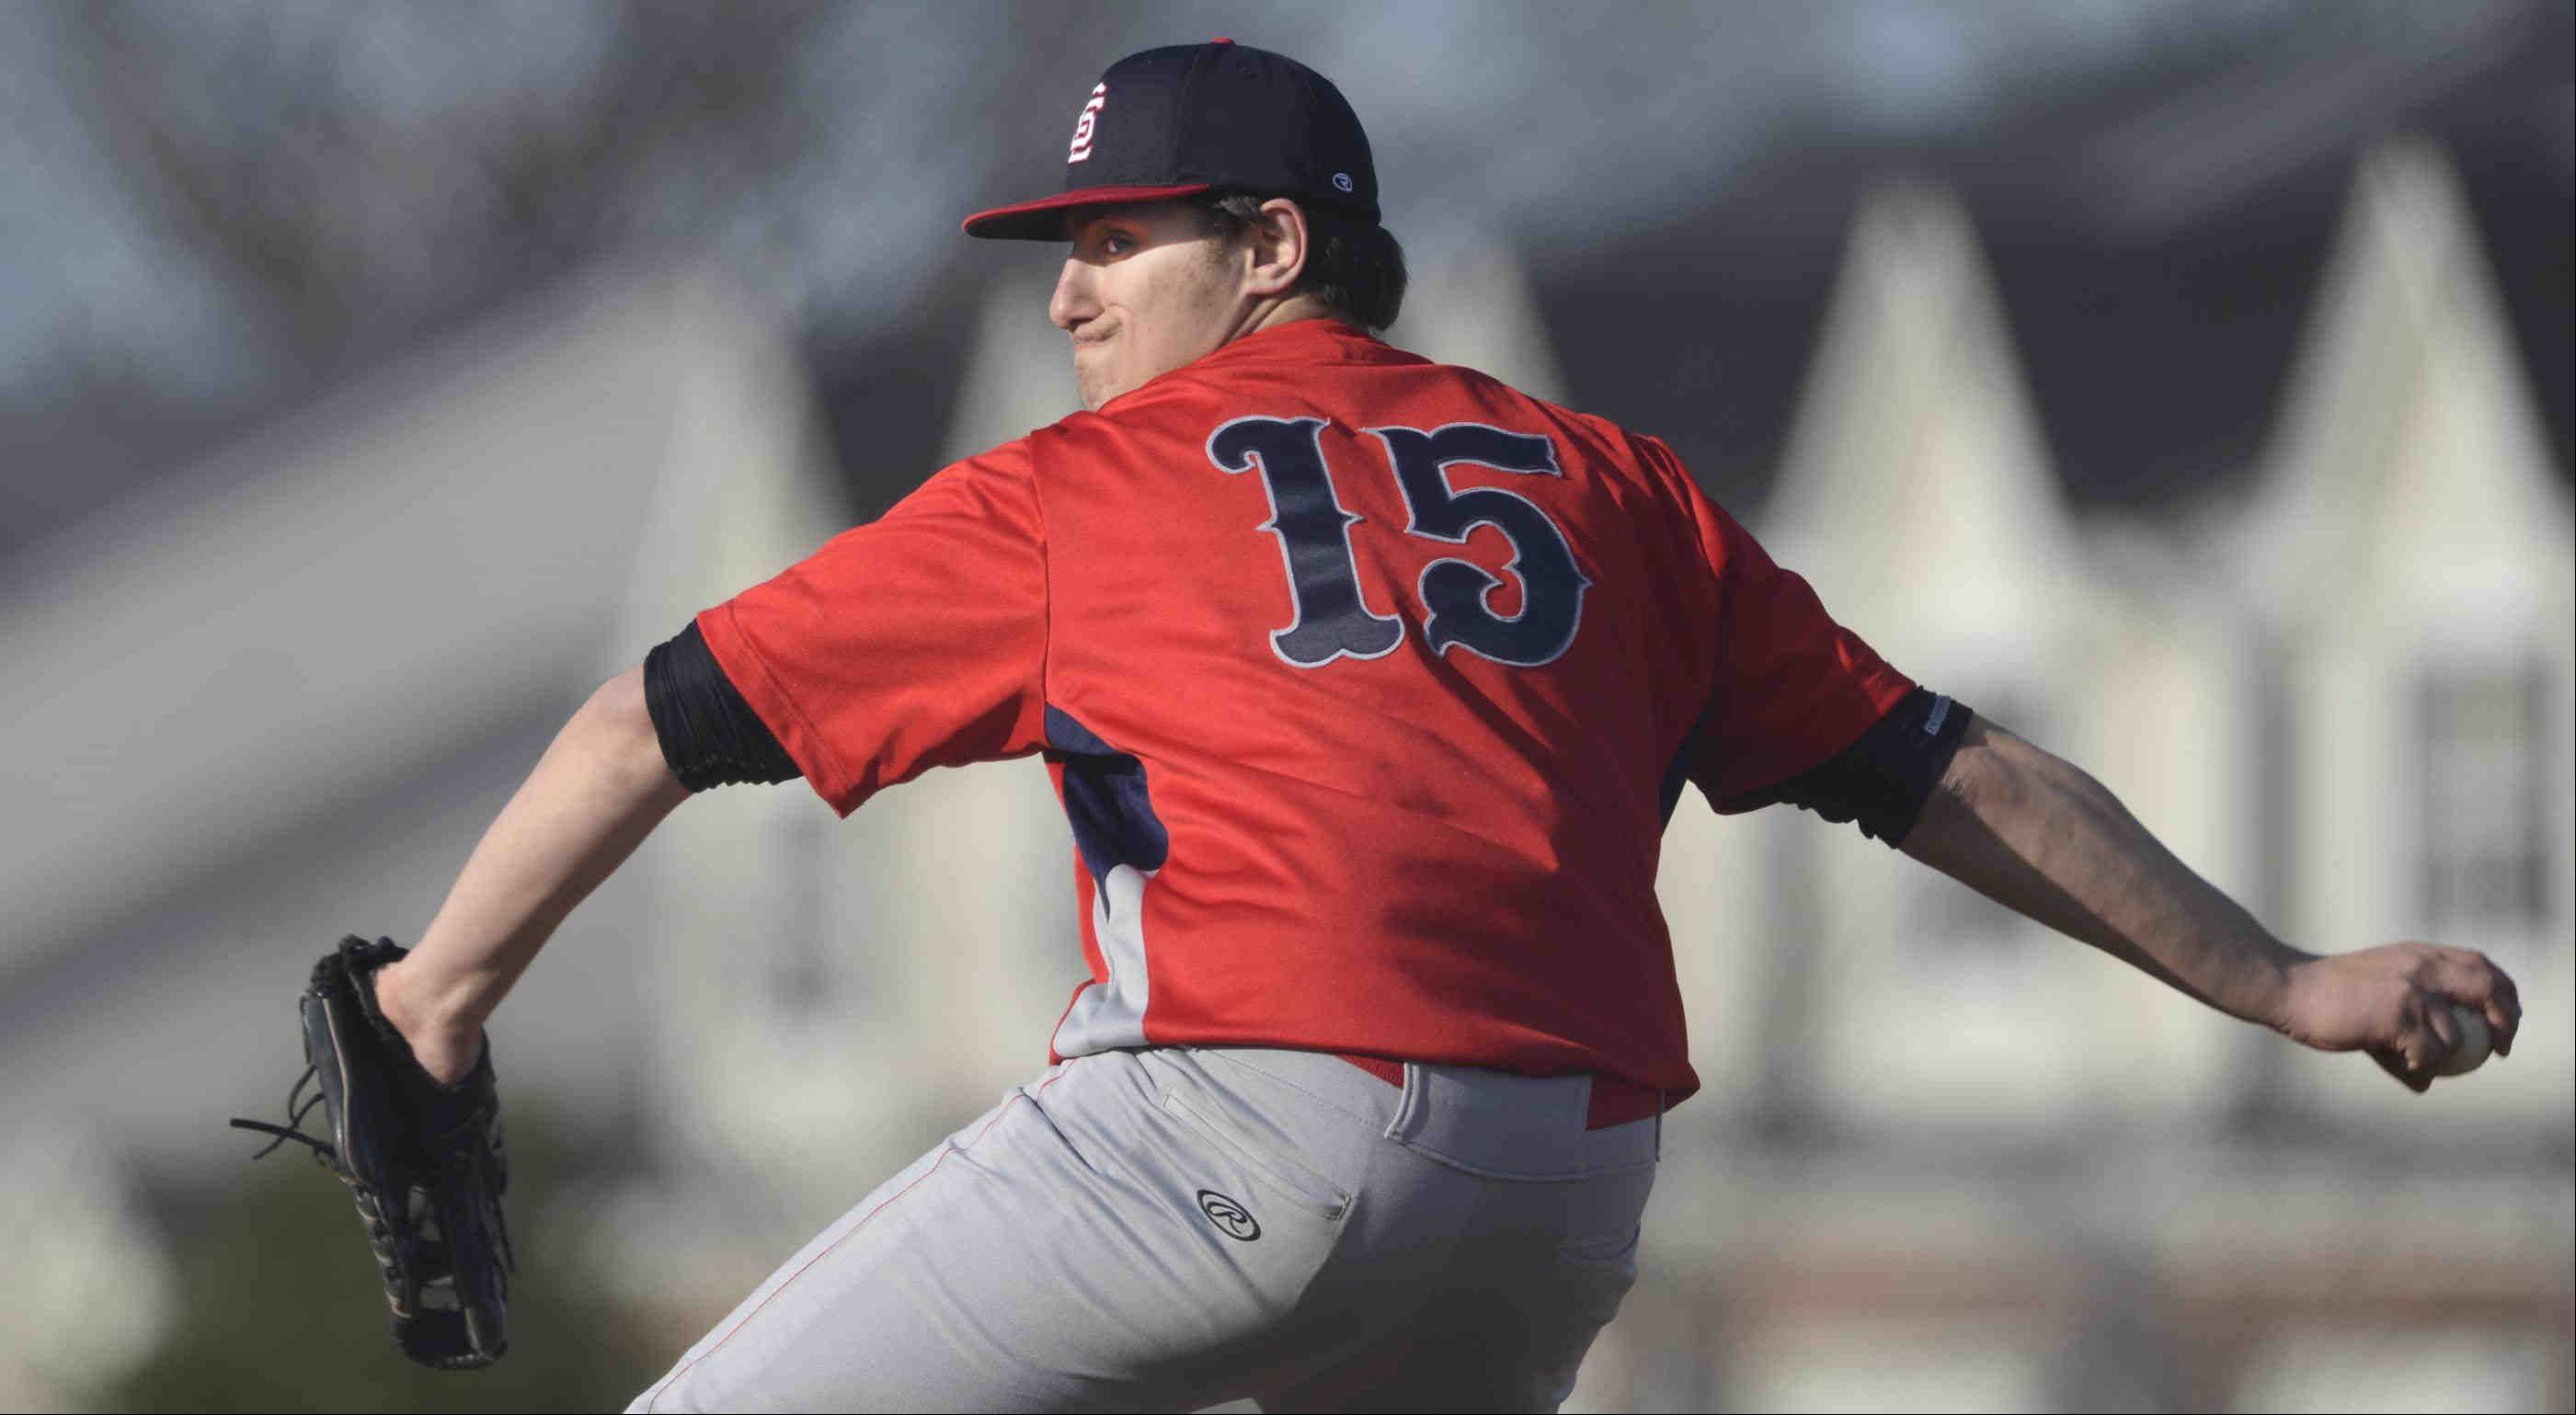 South Elgin starting pitcher David Palmer delivers against Larkin Tuesday in South Elgin.